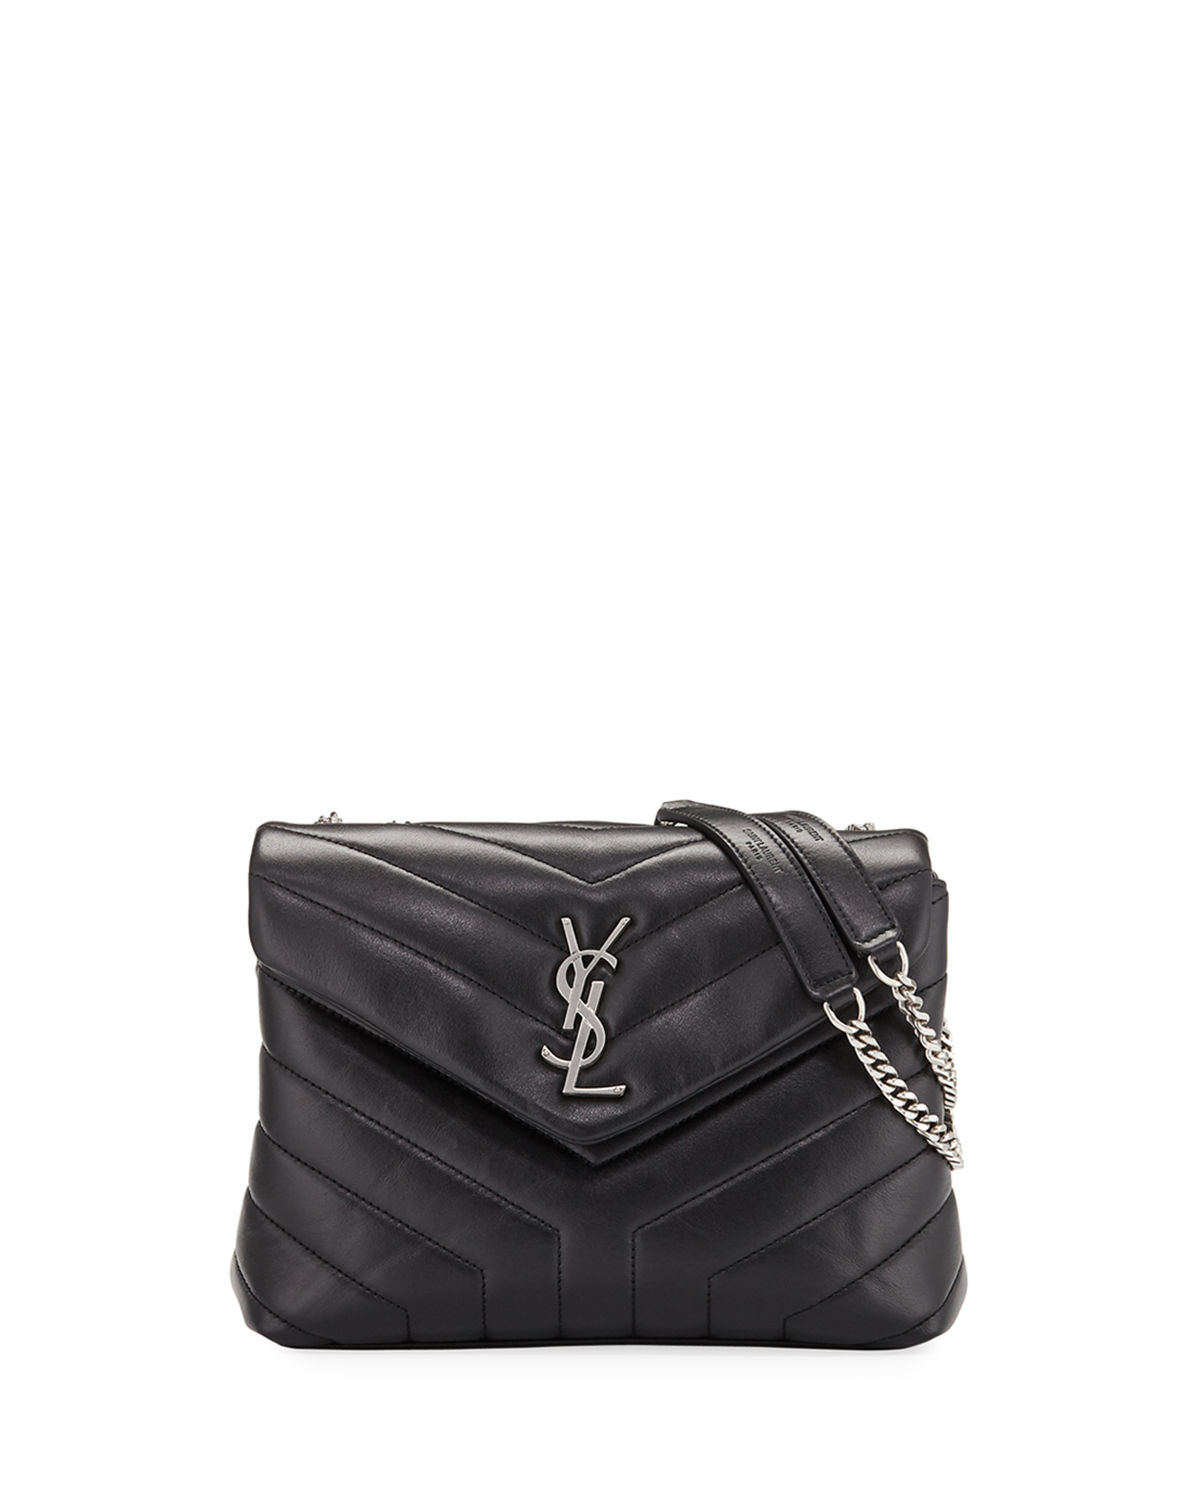 Saint Laurent Loulou Monogram YSL Small Chain Bag  05993baa7d930